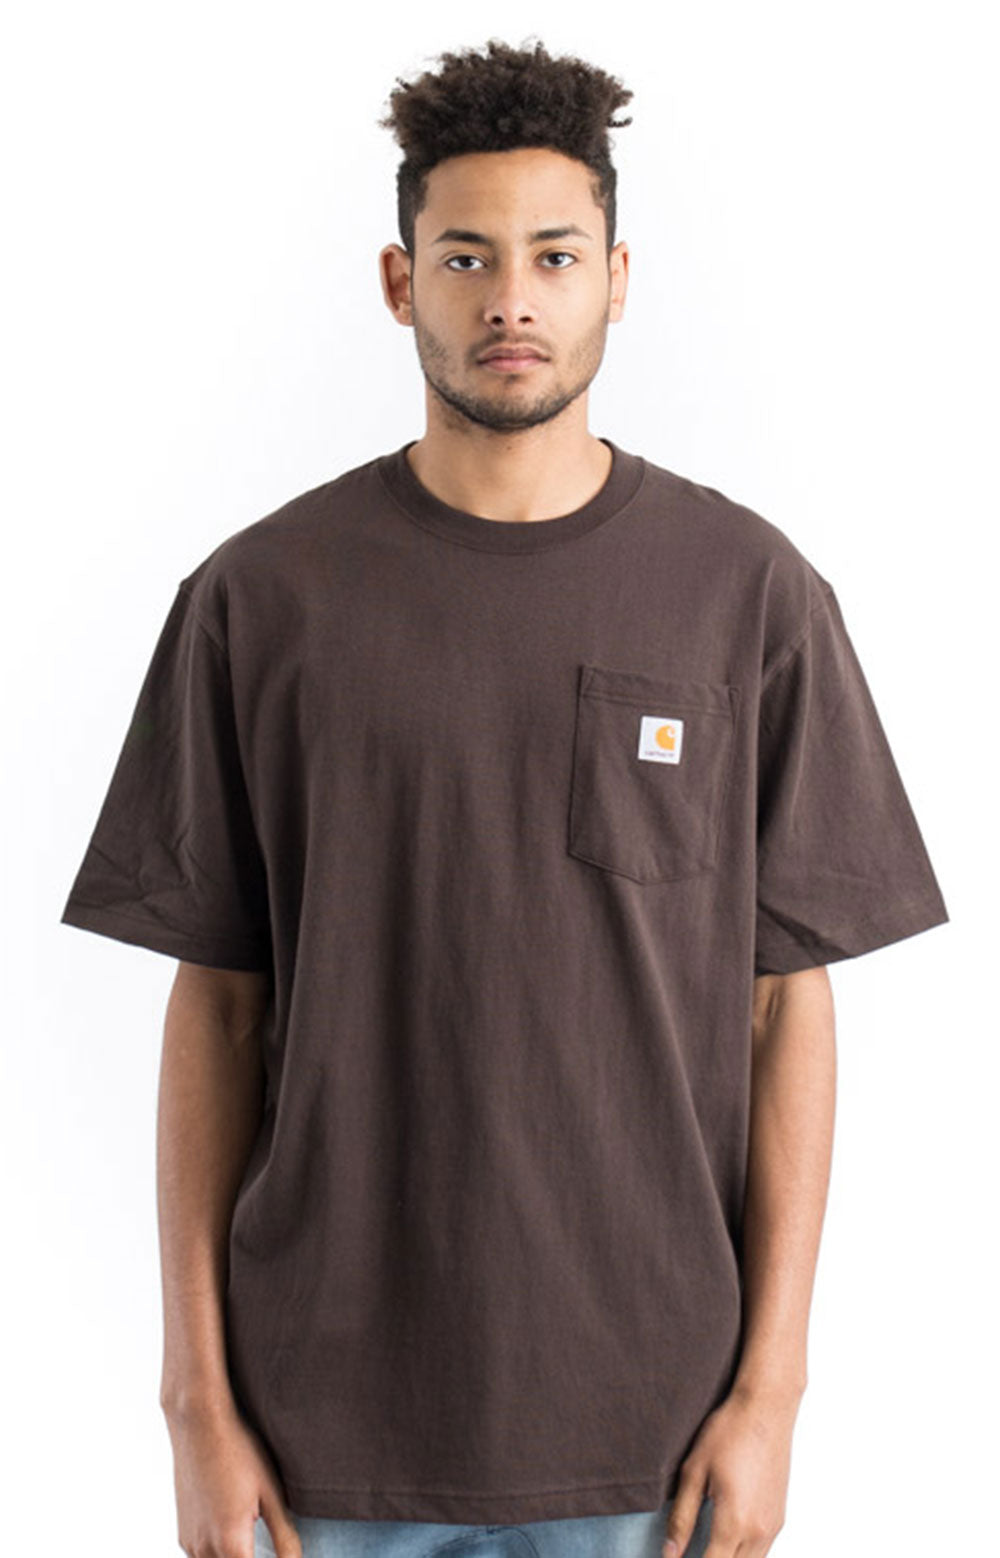 Carhartt K87 Workwear Pocket T-Shirt (Dark Brown)(Oversized fit)